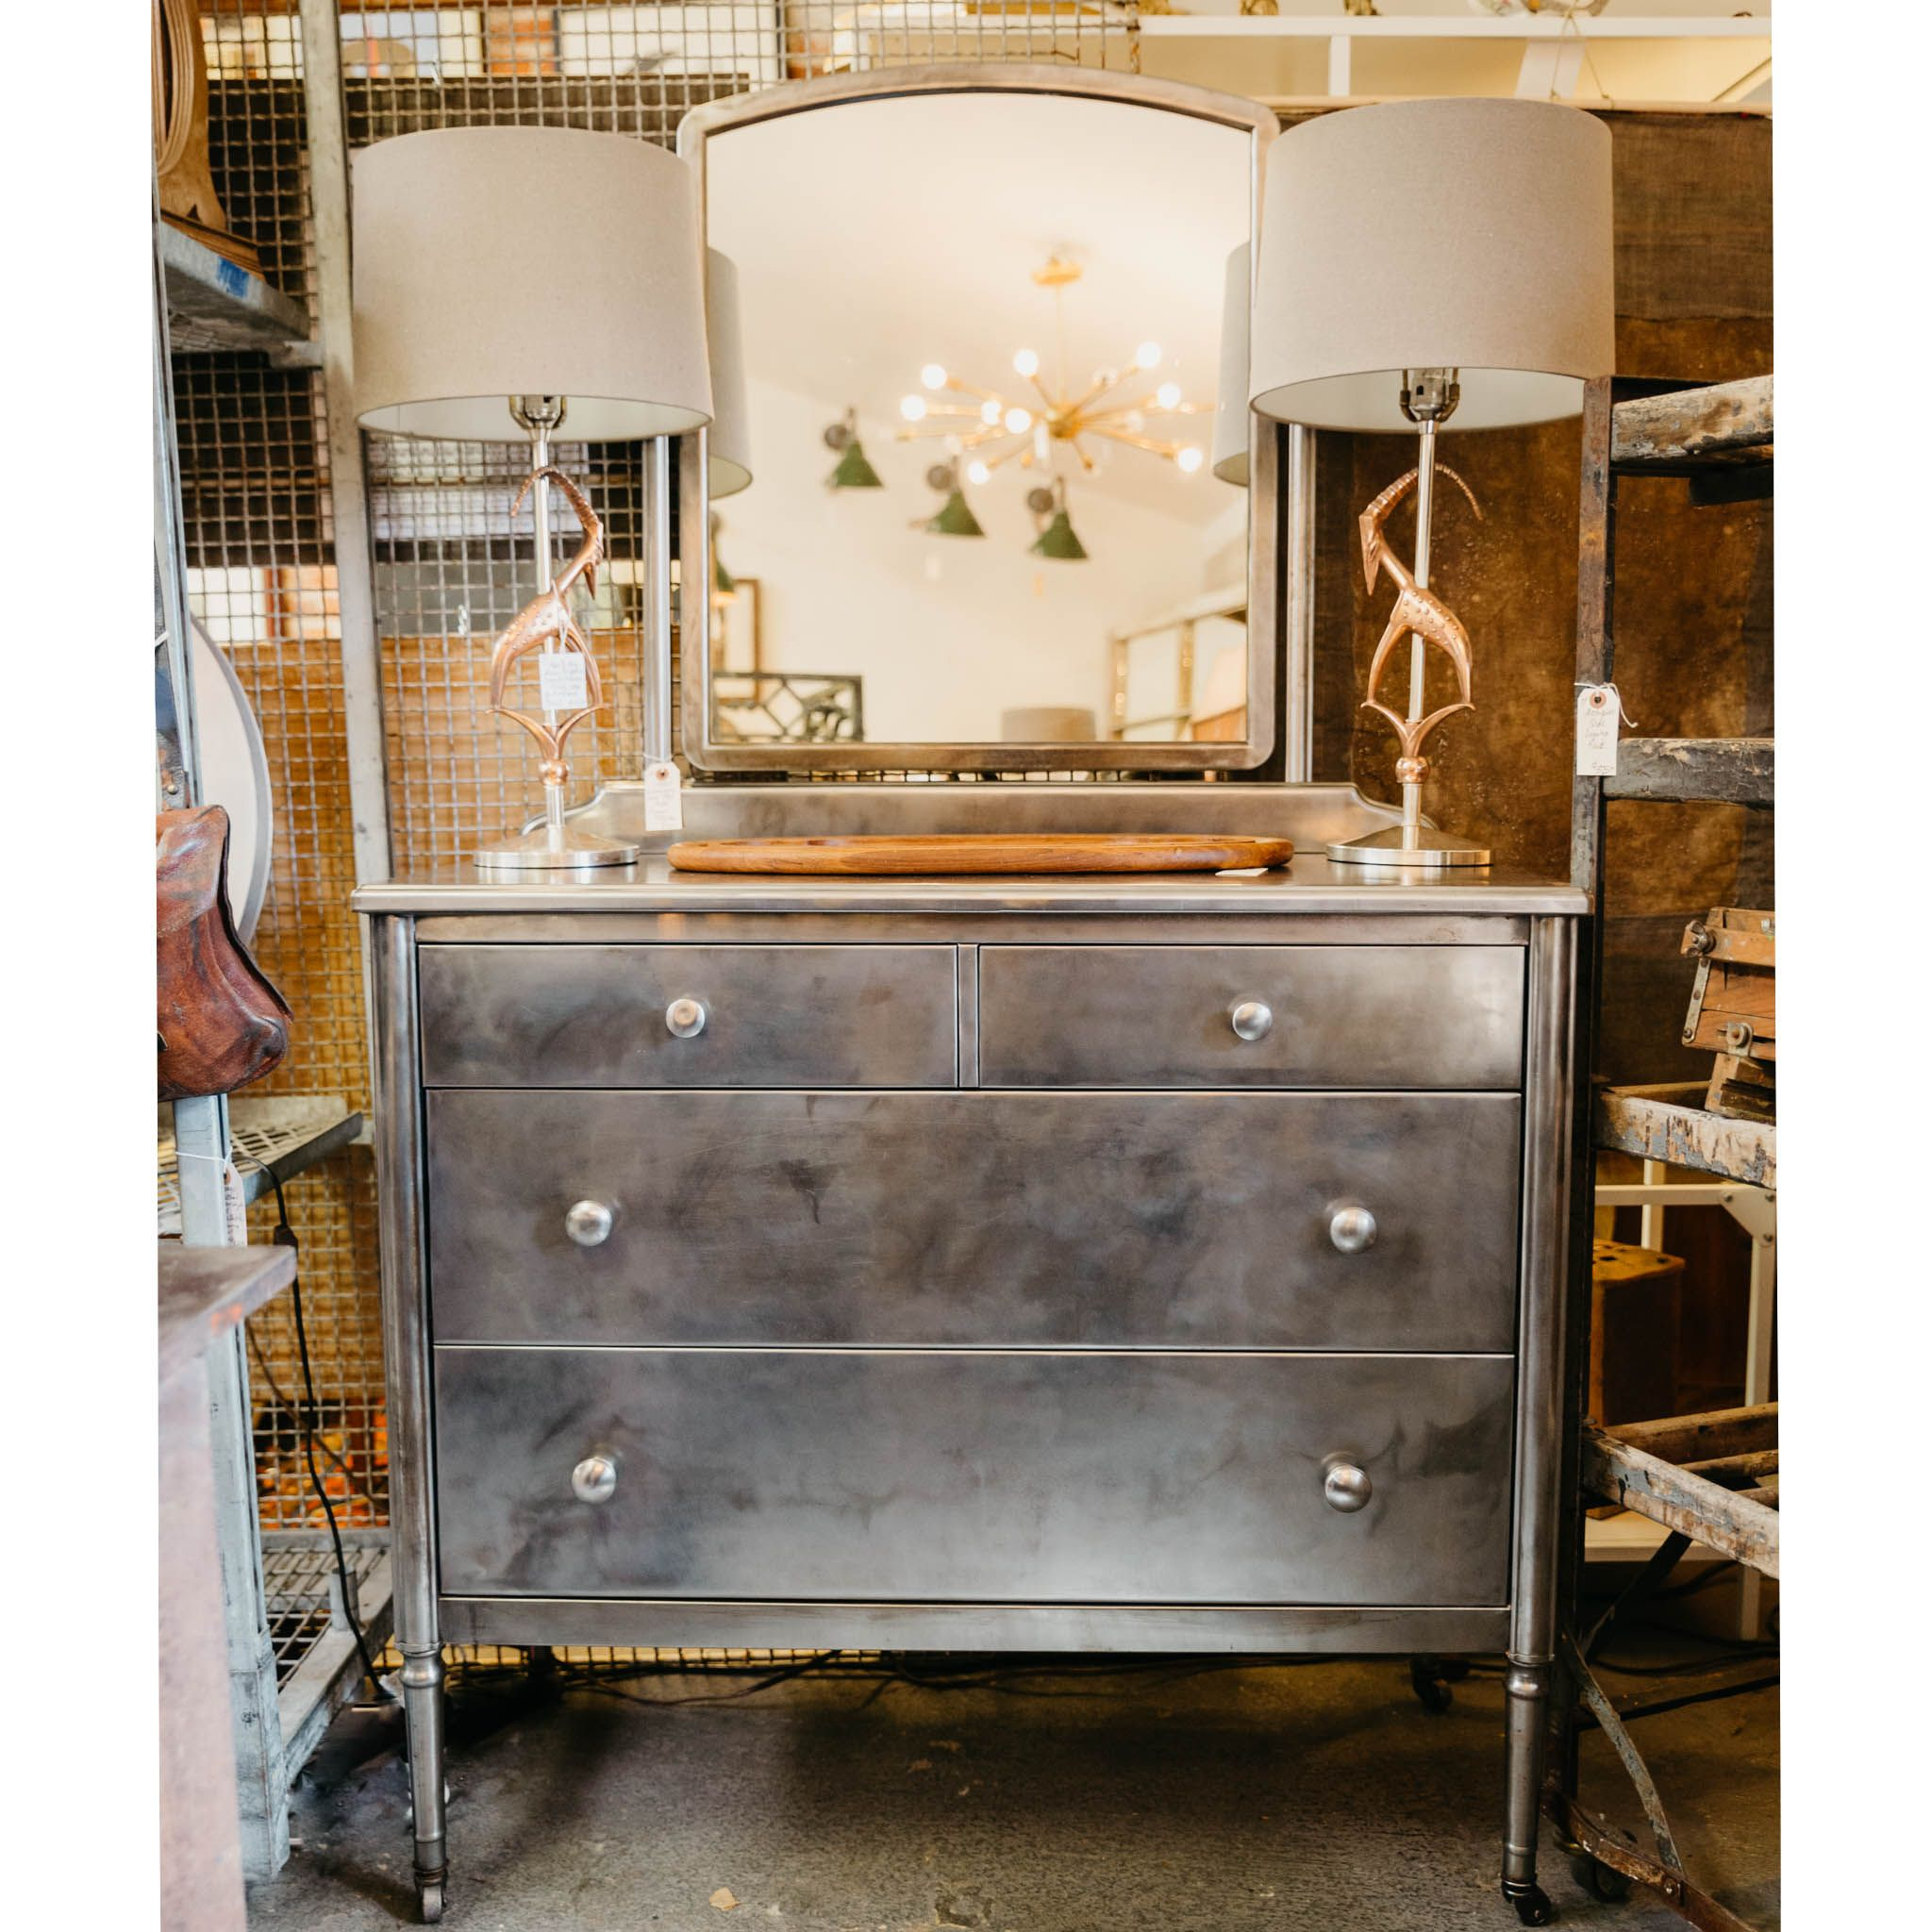 1930s Simmons Raw Steel Metal Dresser